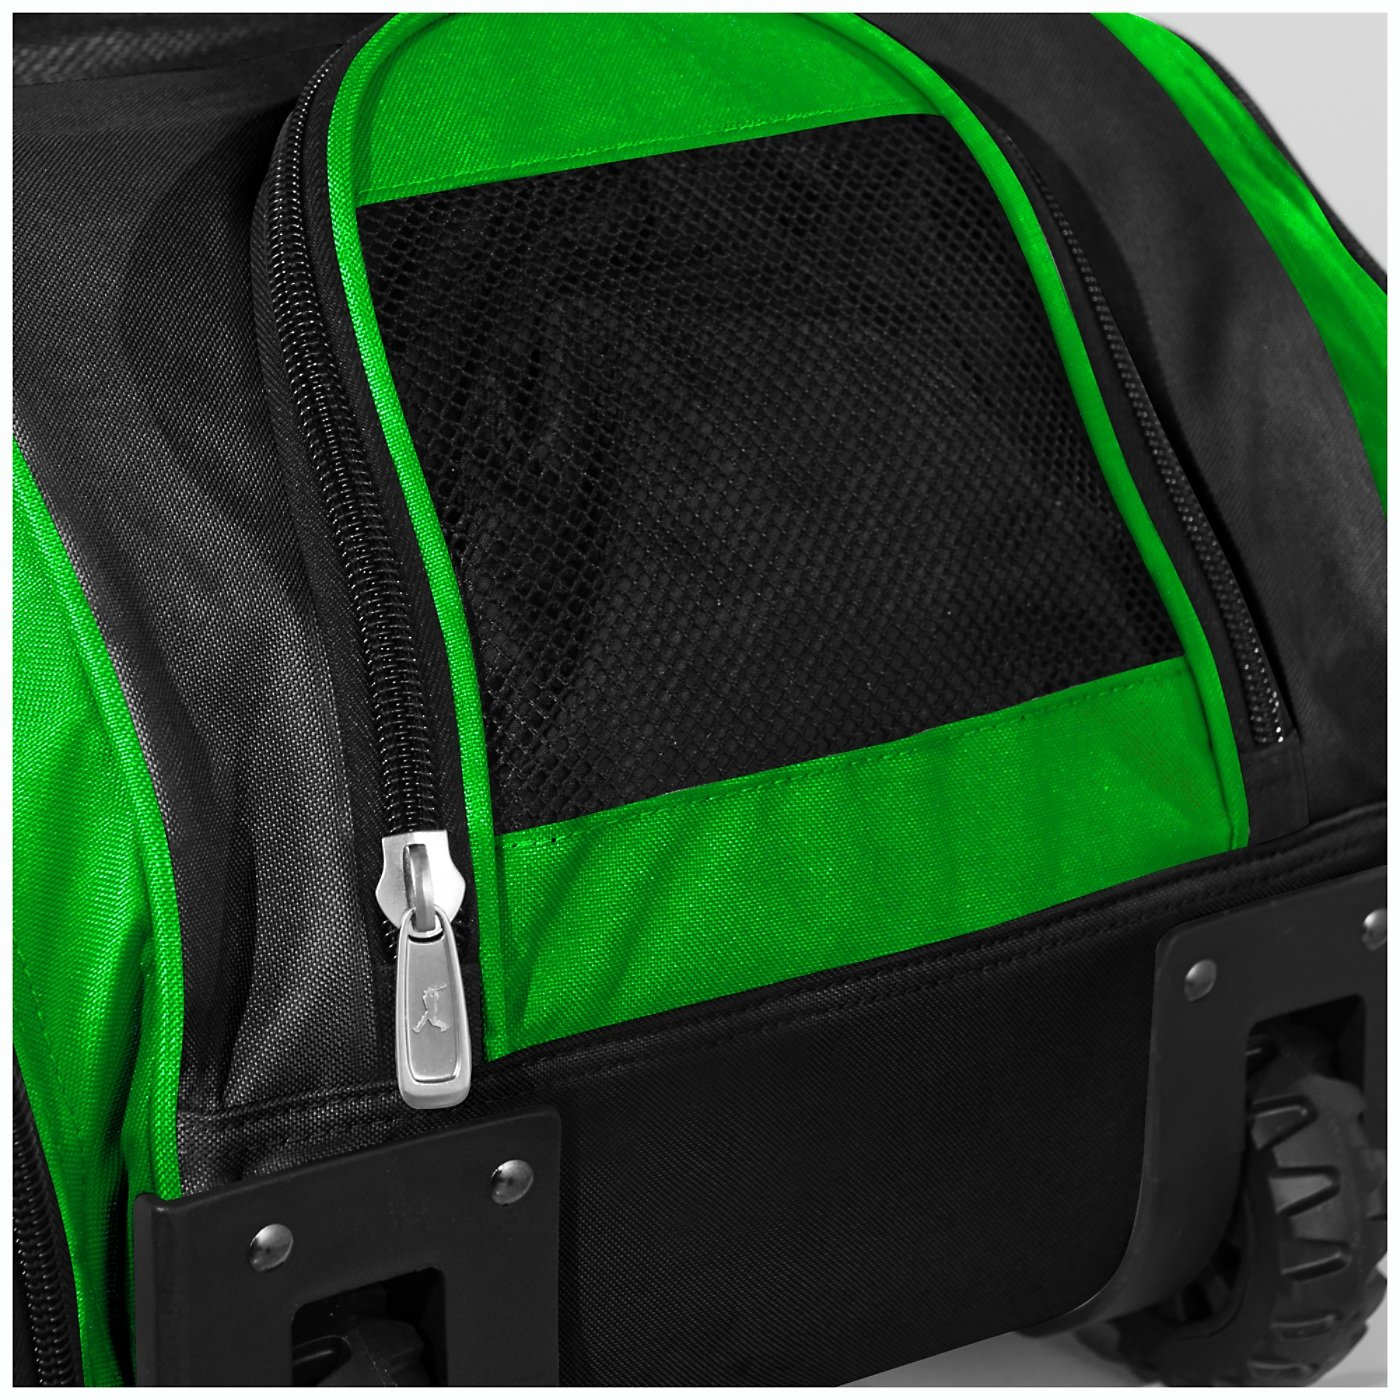 Boombah Beast Baseball/Softball Bat Bag - 40'' x 14'' x 13'' - Black/Lime Green - Holds 8 Bats, Glove & Shoe Compartments by Boombah (Image #4)